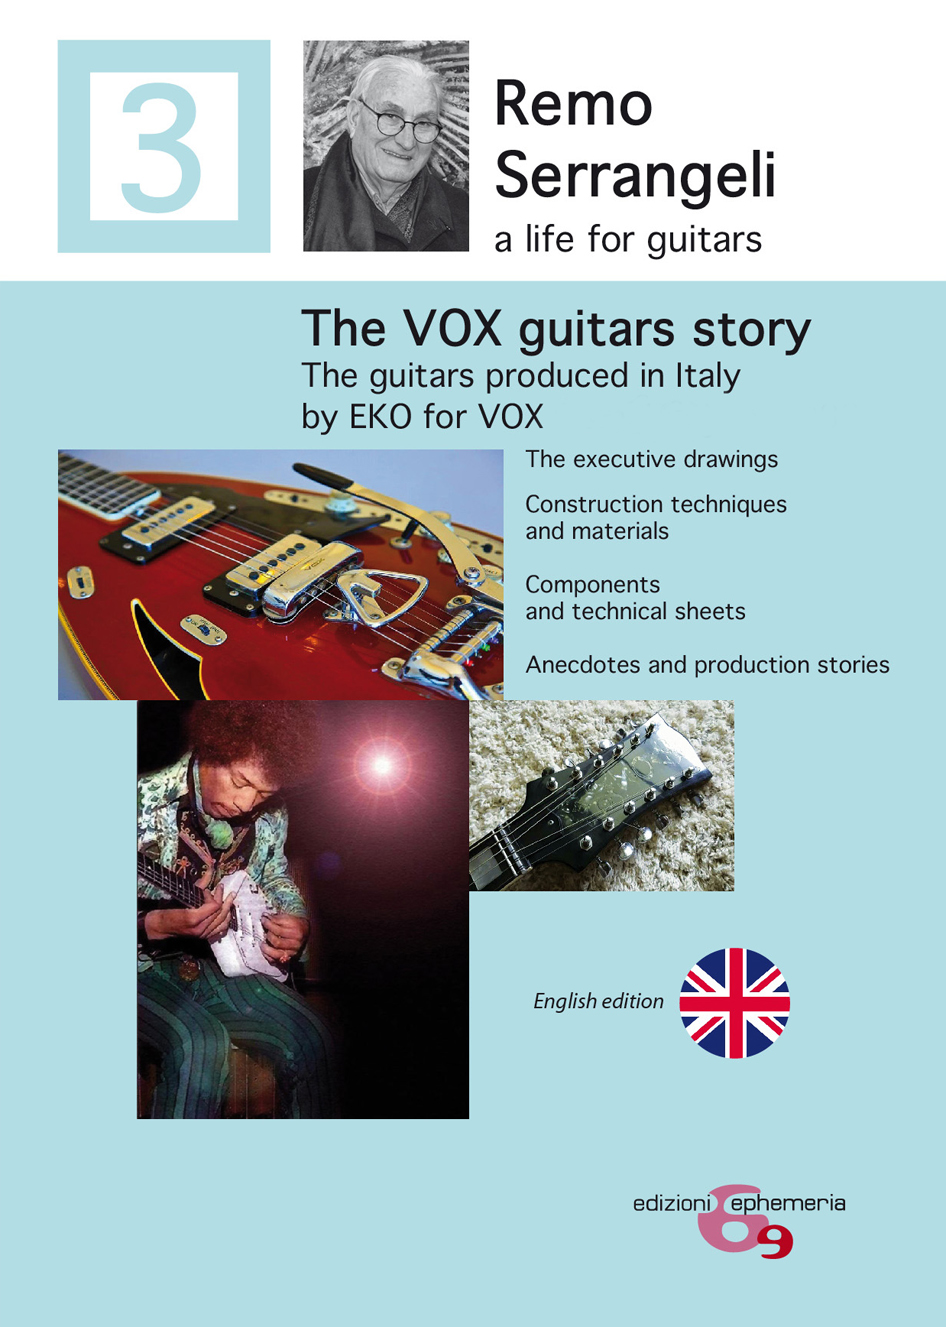 The VOX guitars story. The guitars produced in Italy by EKO for VOX from 1968 to 1982